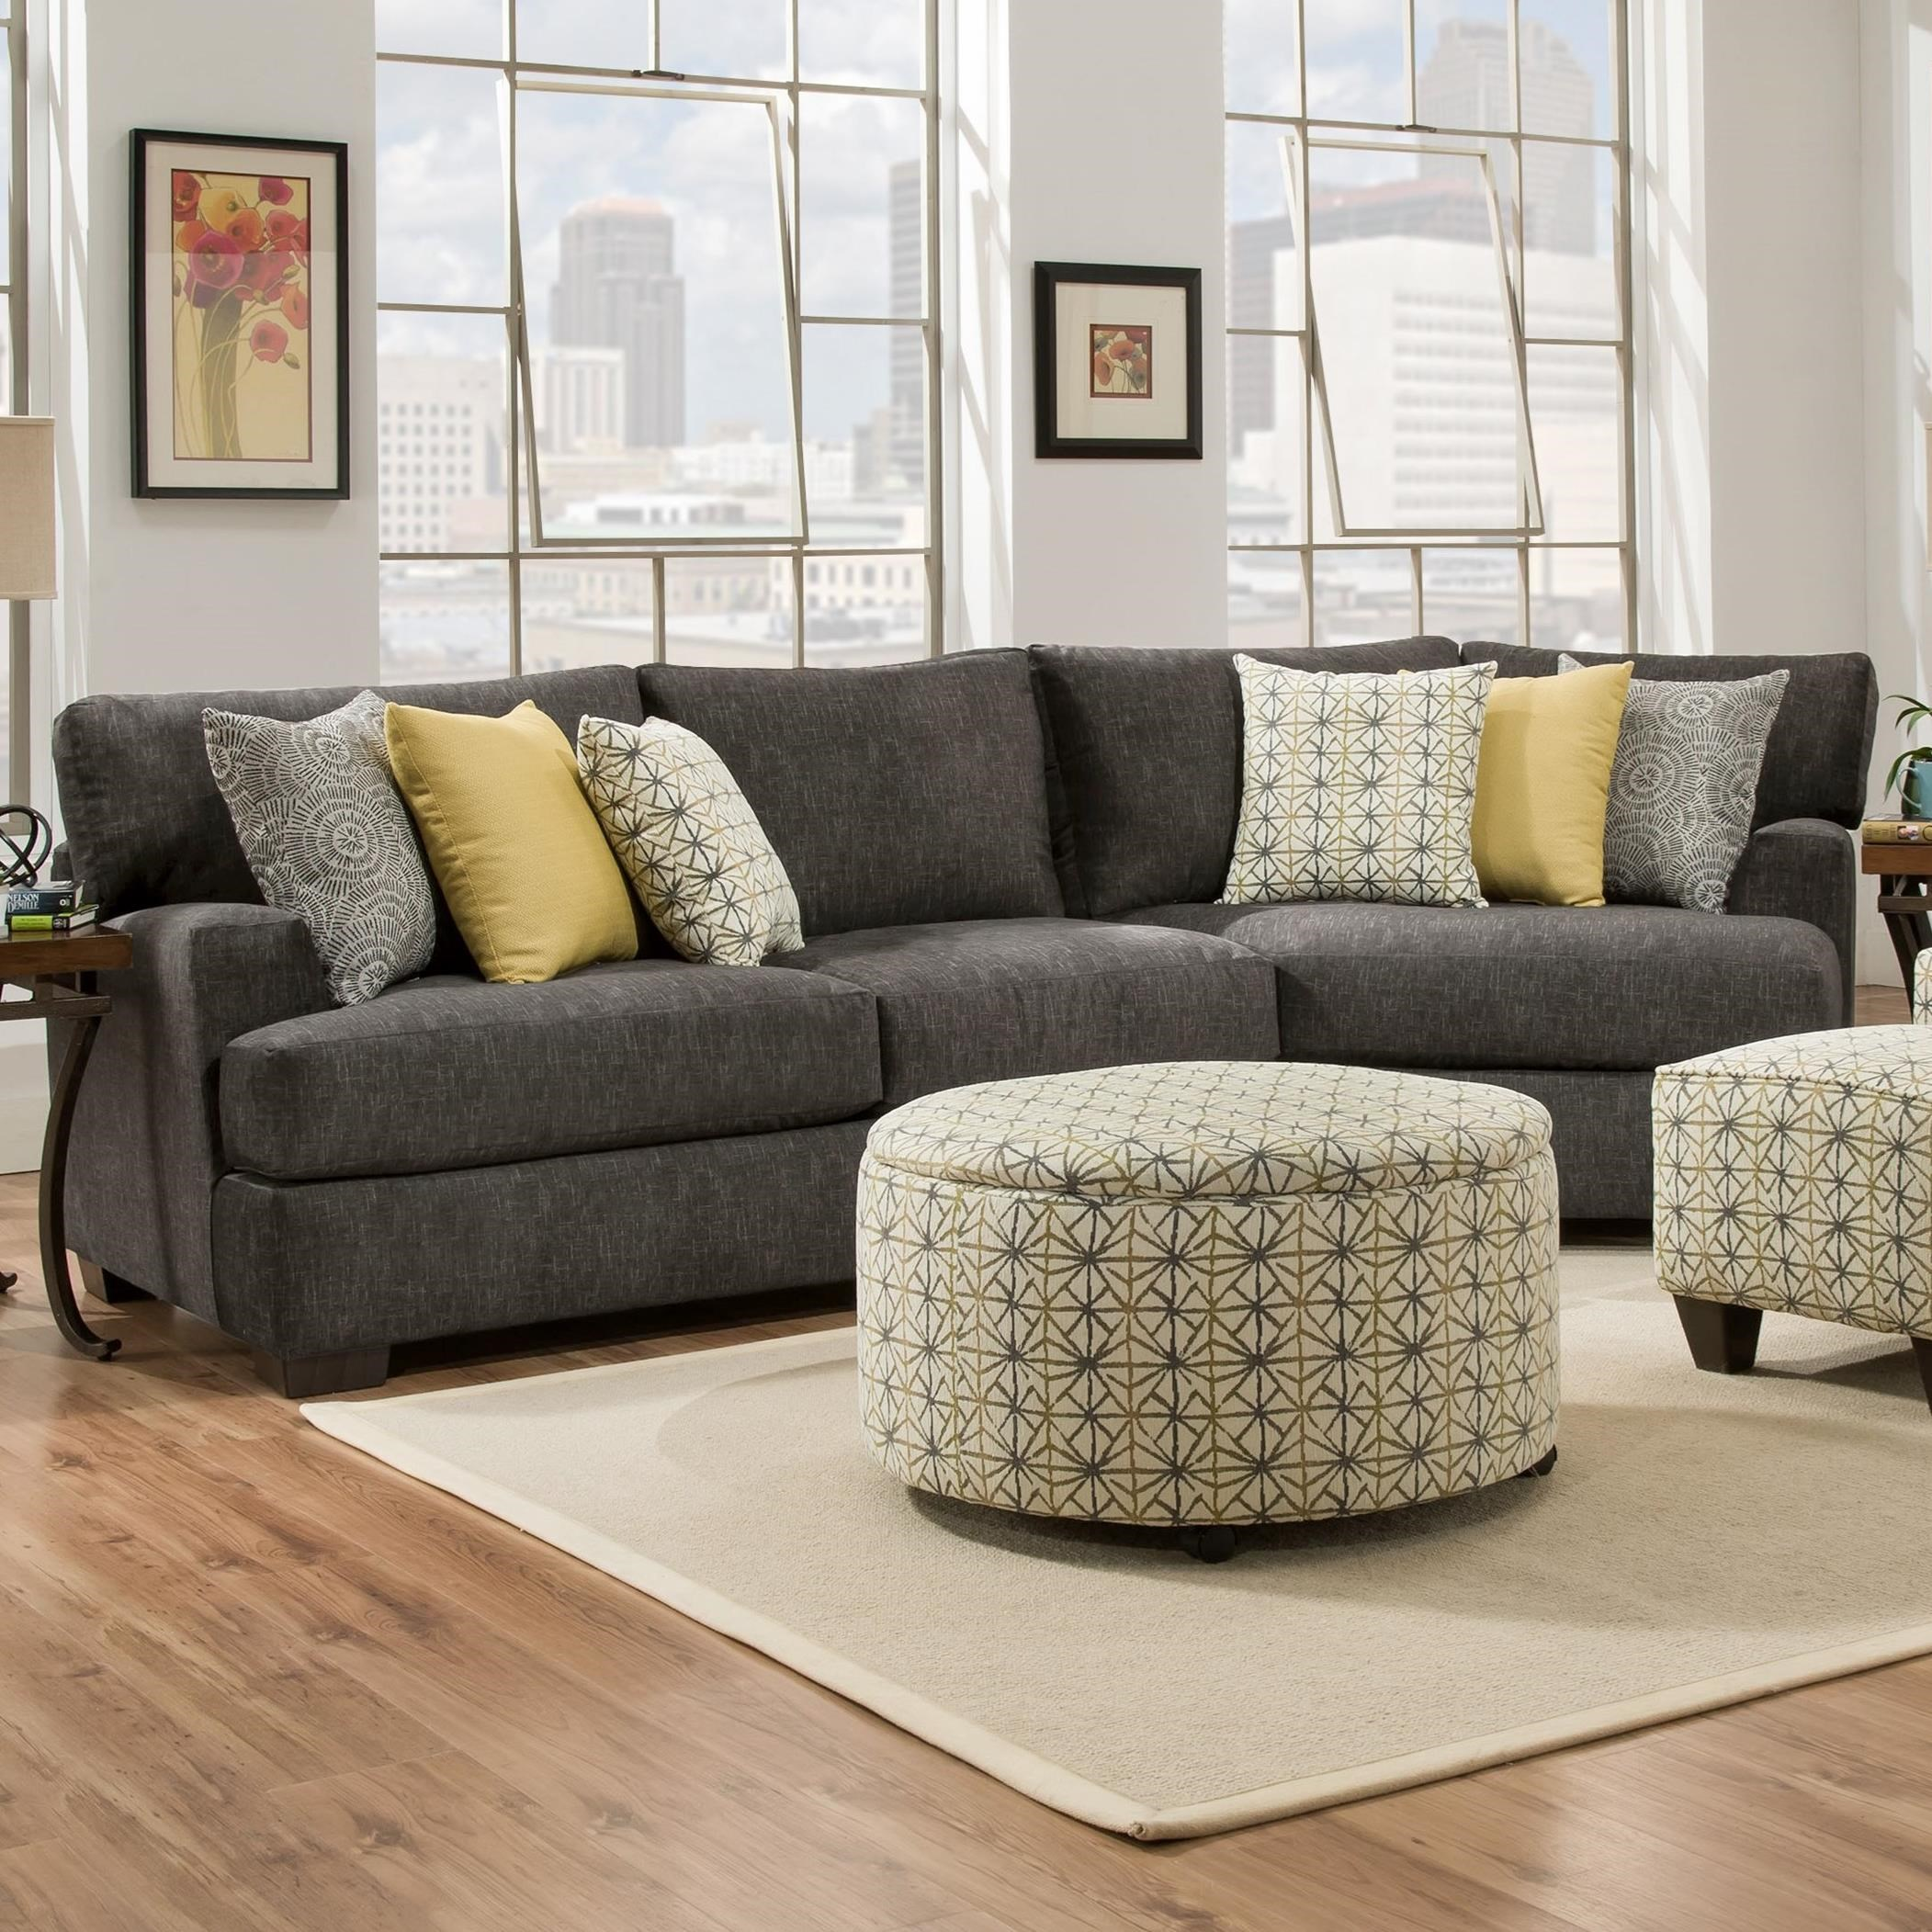 29C0 3 Seat Sectional with Piano Wedge by Corinthian at Story & Lee Furniture